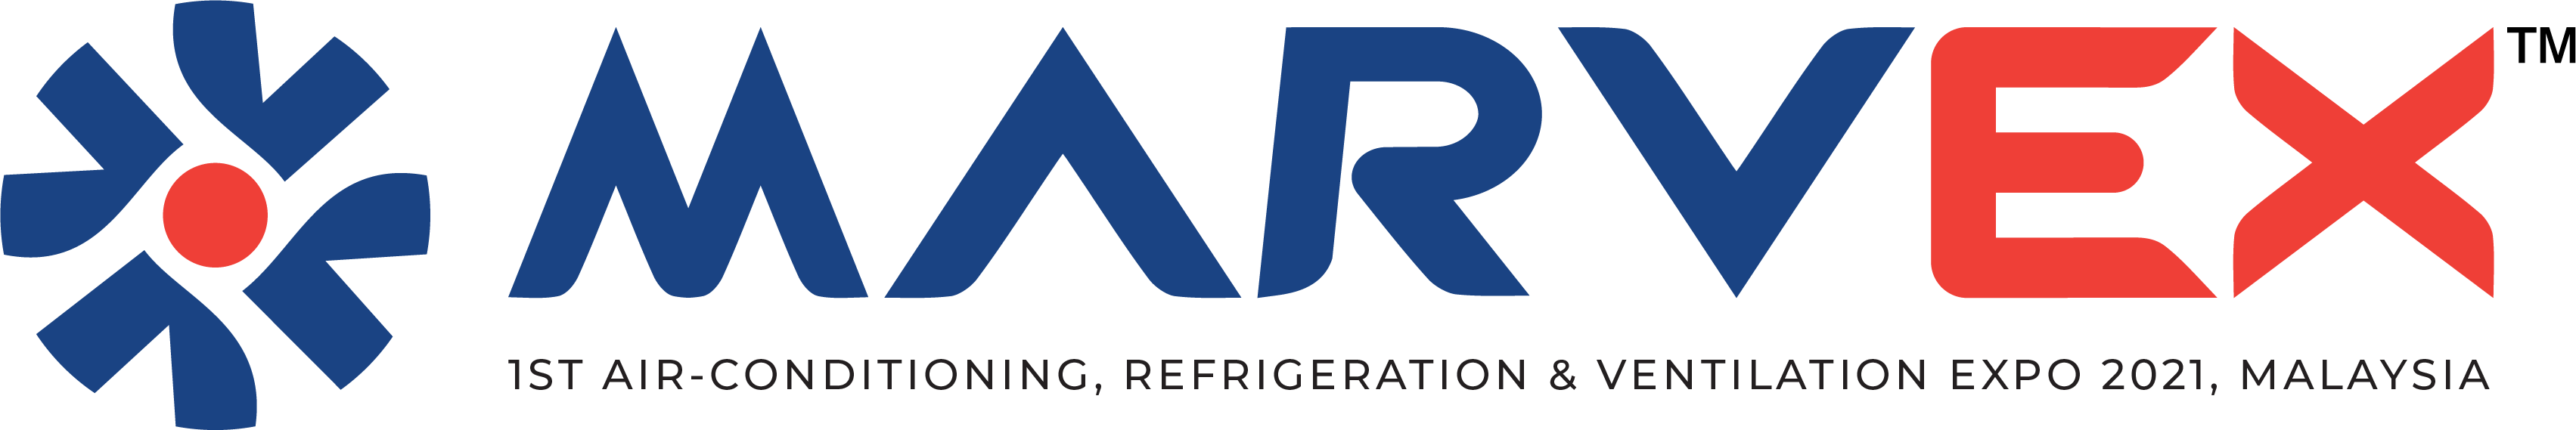 MARVEX-AIR-CONDITIONING, REFRIGERATION & VENTILATION EXPO, MALAYSIA